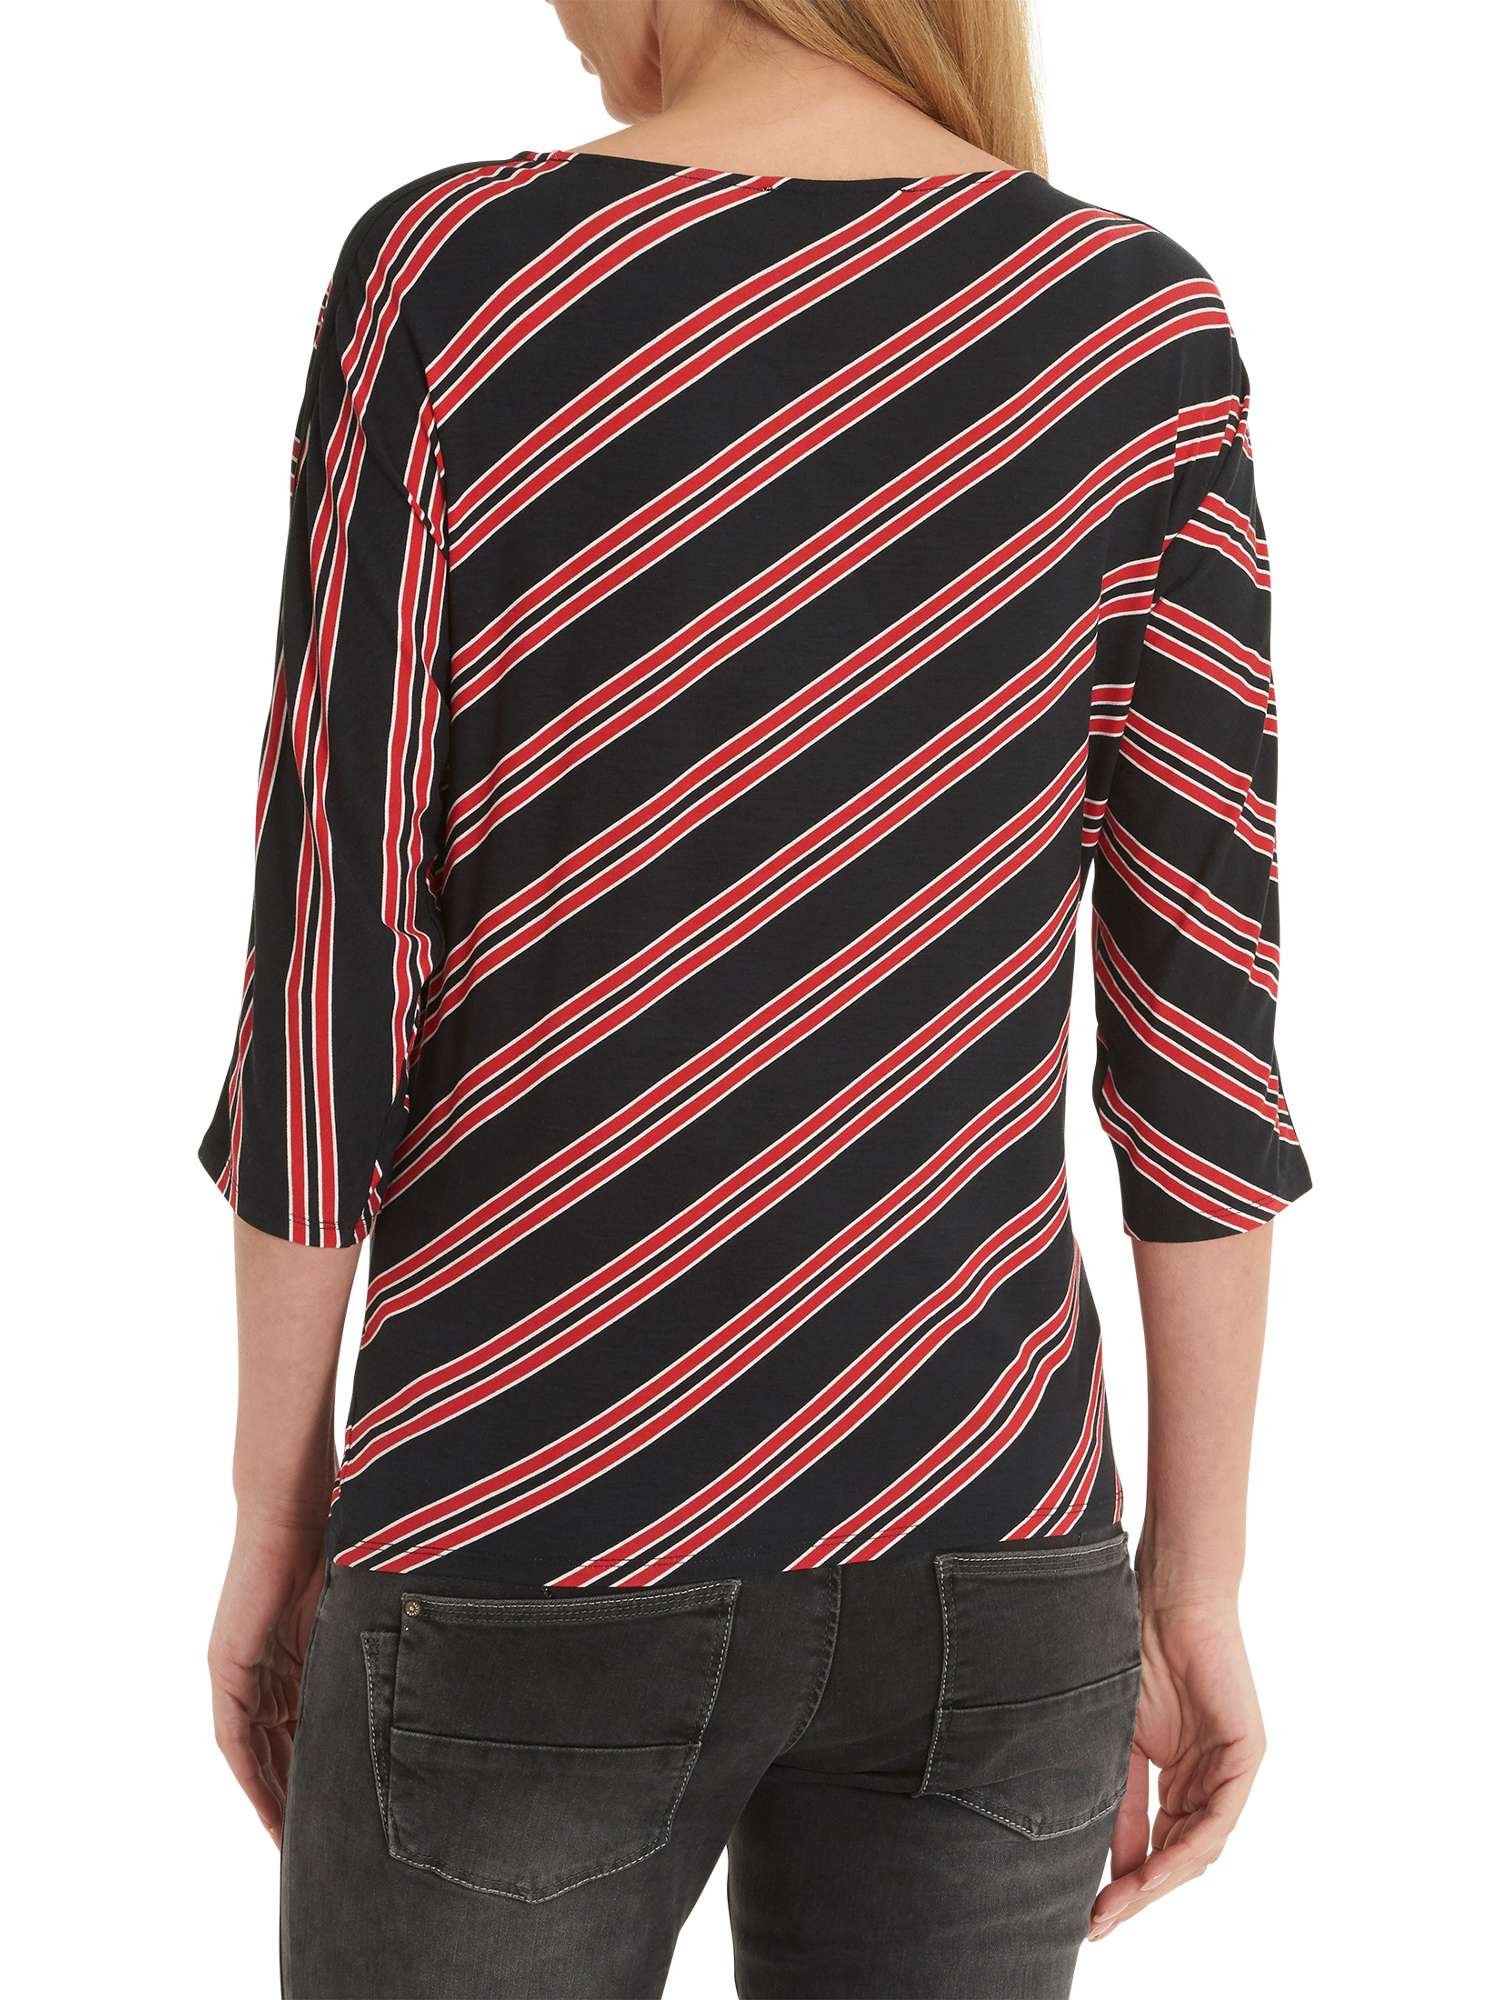 Betty amp; Striped Top Jersey Co FFwqfr4